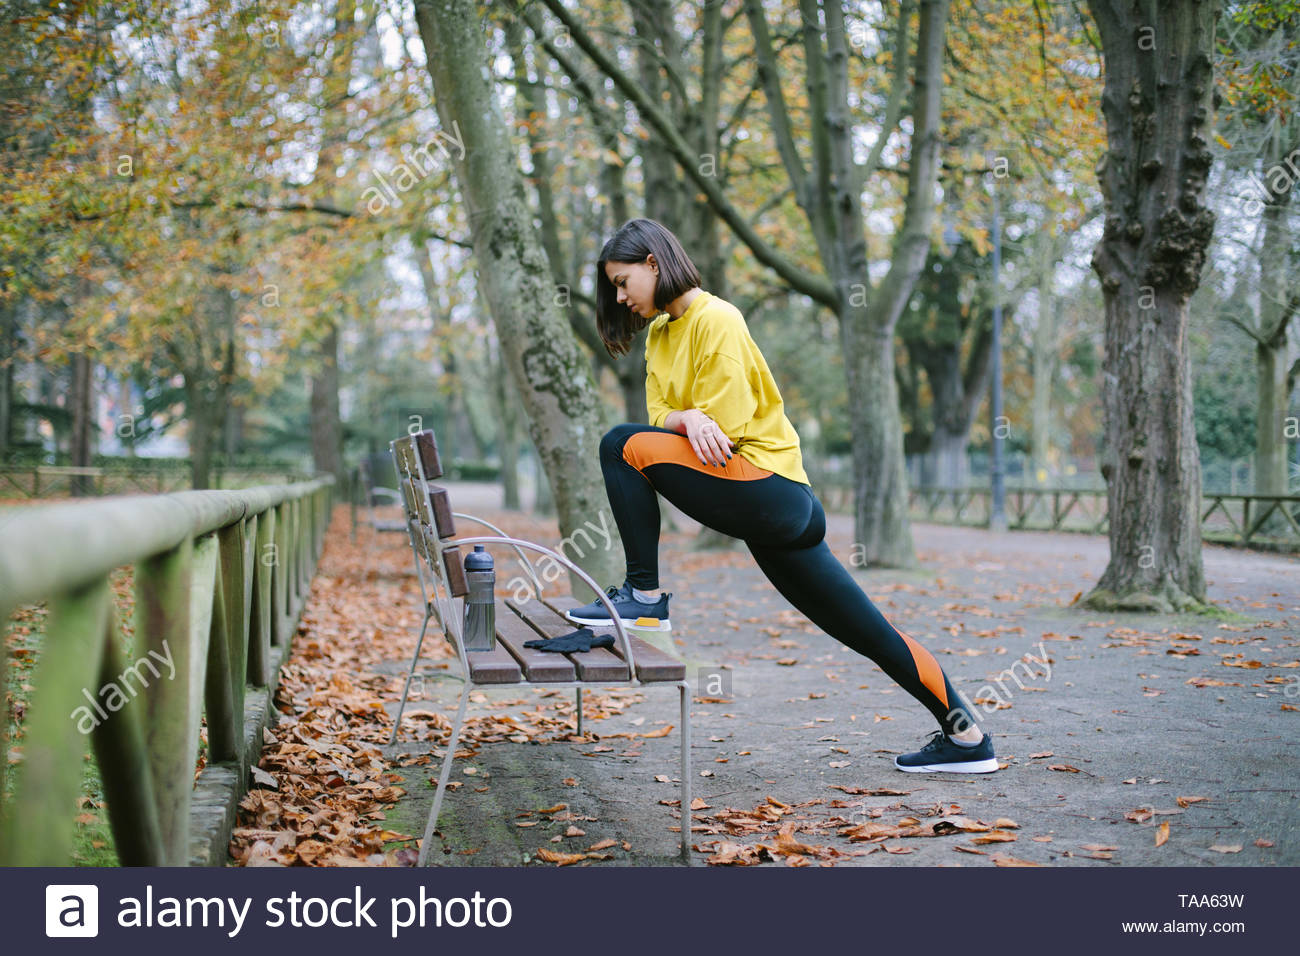 Female athlete stretching for warming up before running at city park in autumn. Sporty woman exercising outdoor. - Stock Image